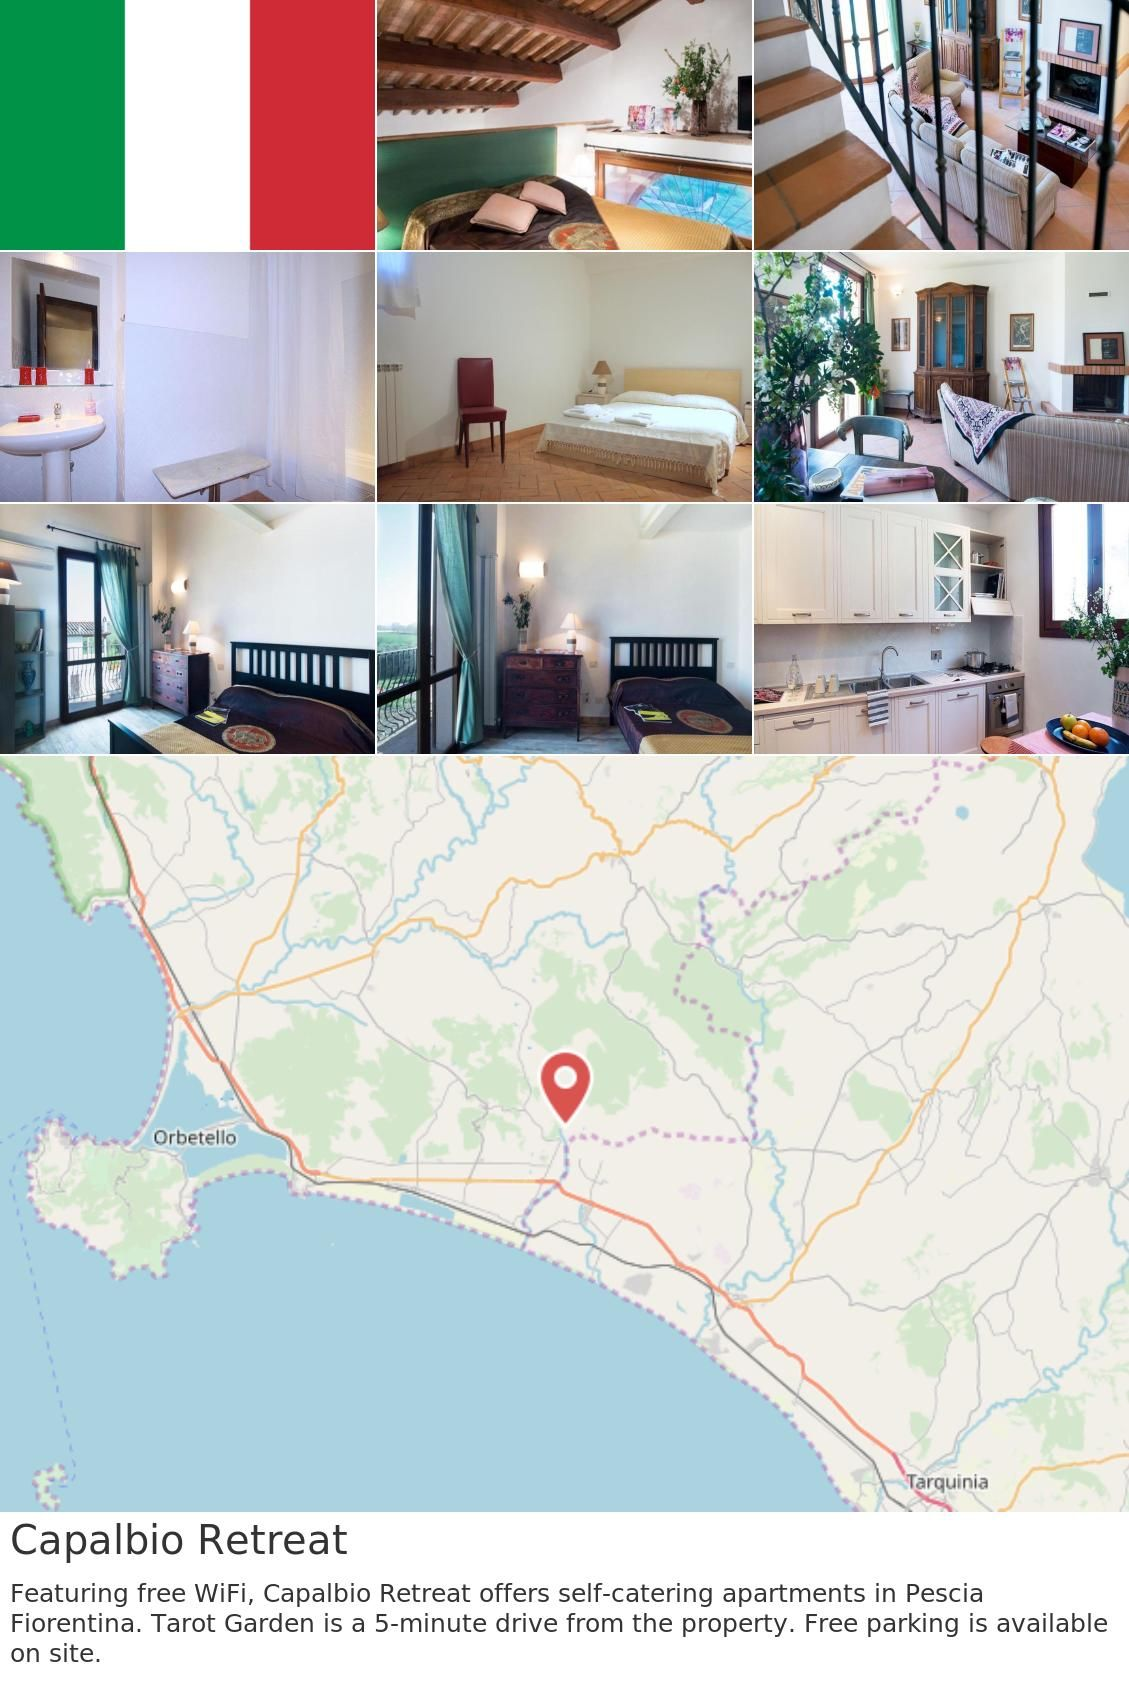 Europe Italy Capalbio Capalbio Retreat Featuring Free Wifi Capalbio Retreat Offers Self Catering Apartments In Pescia Fiorentina Tarot Garden Is A 5 Minut